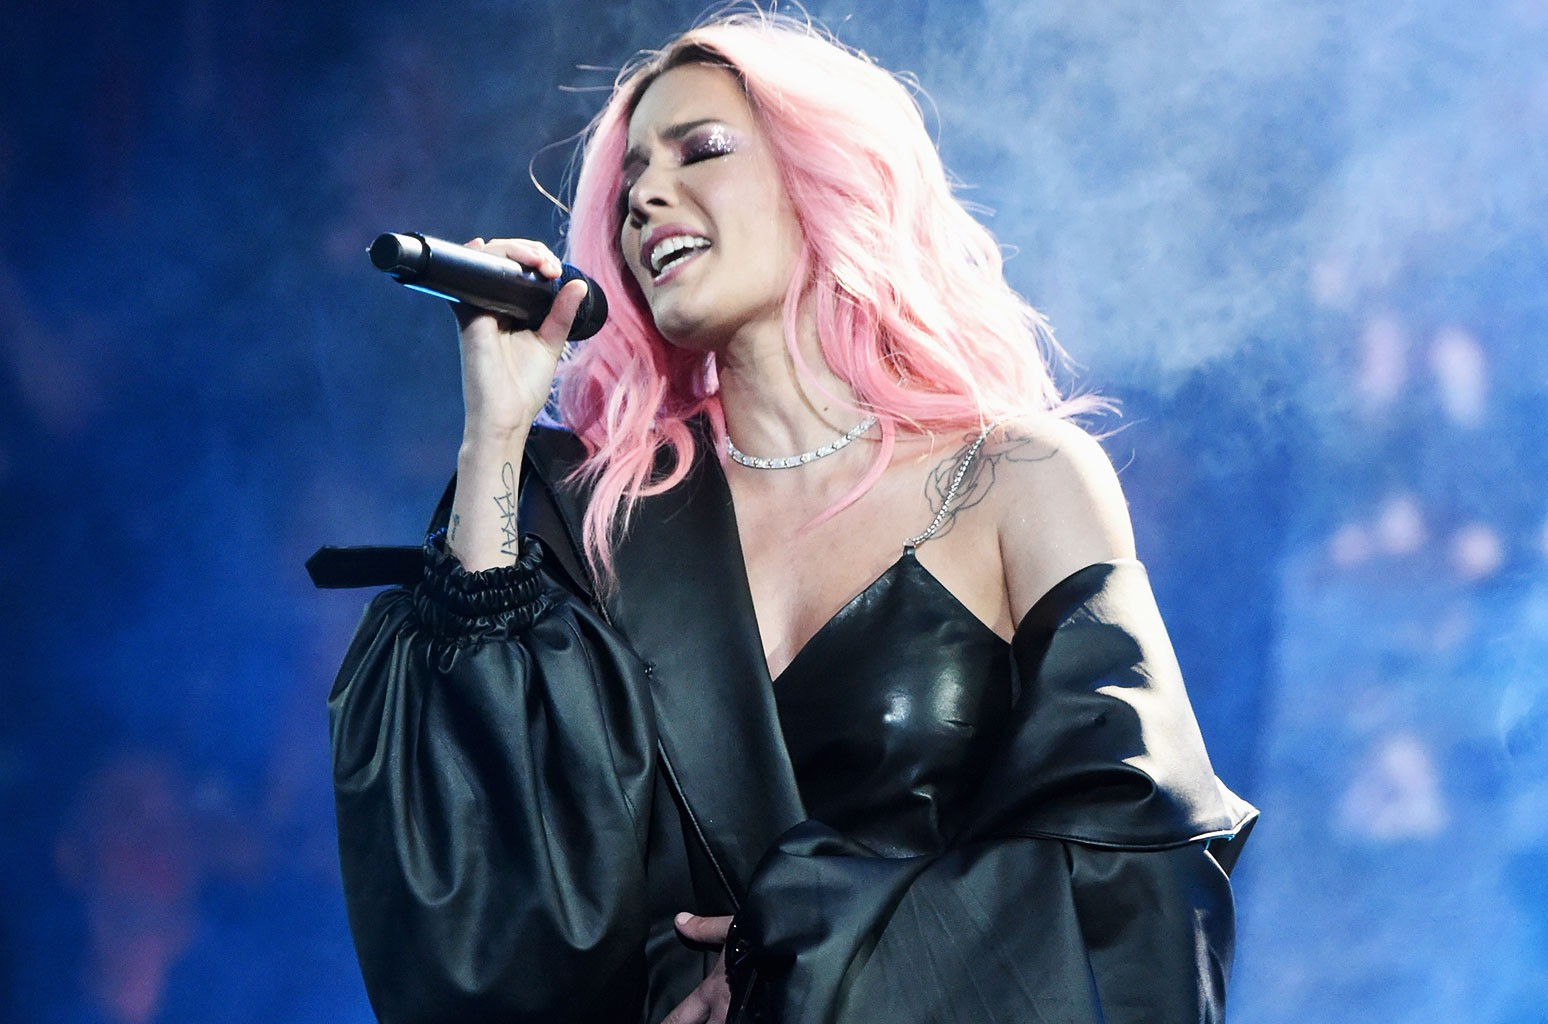 Halsey [CANCELLED] at Xfinity Center